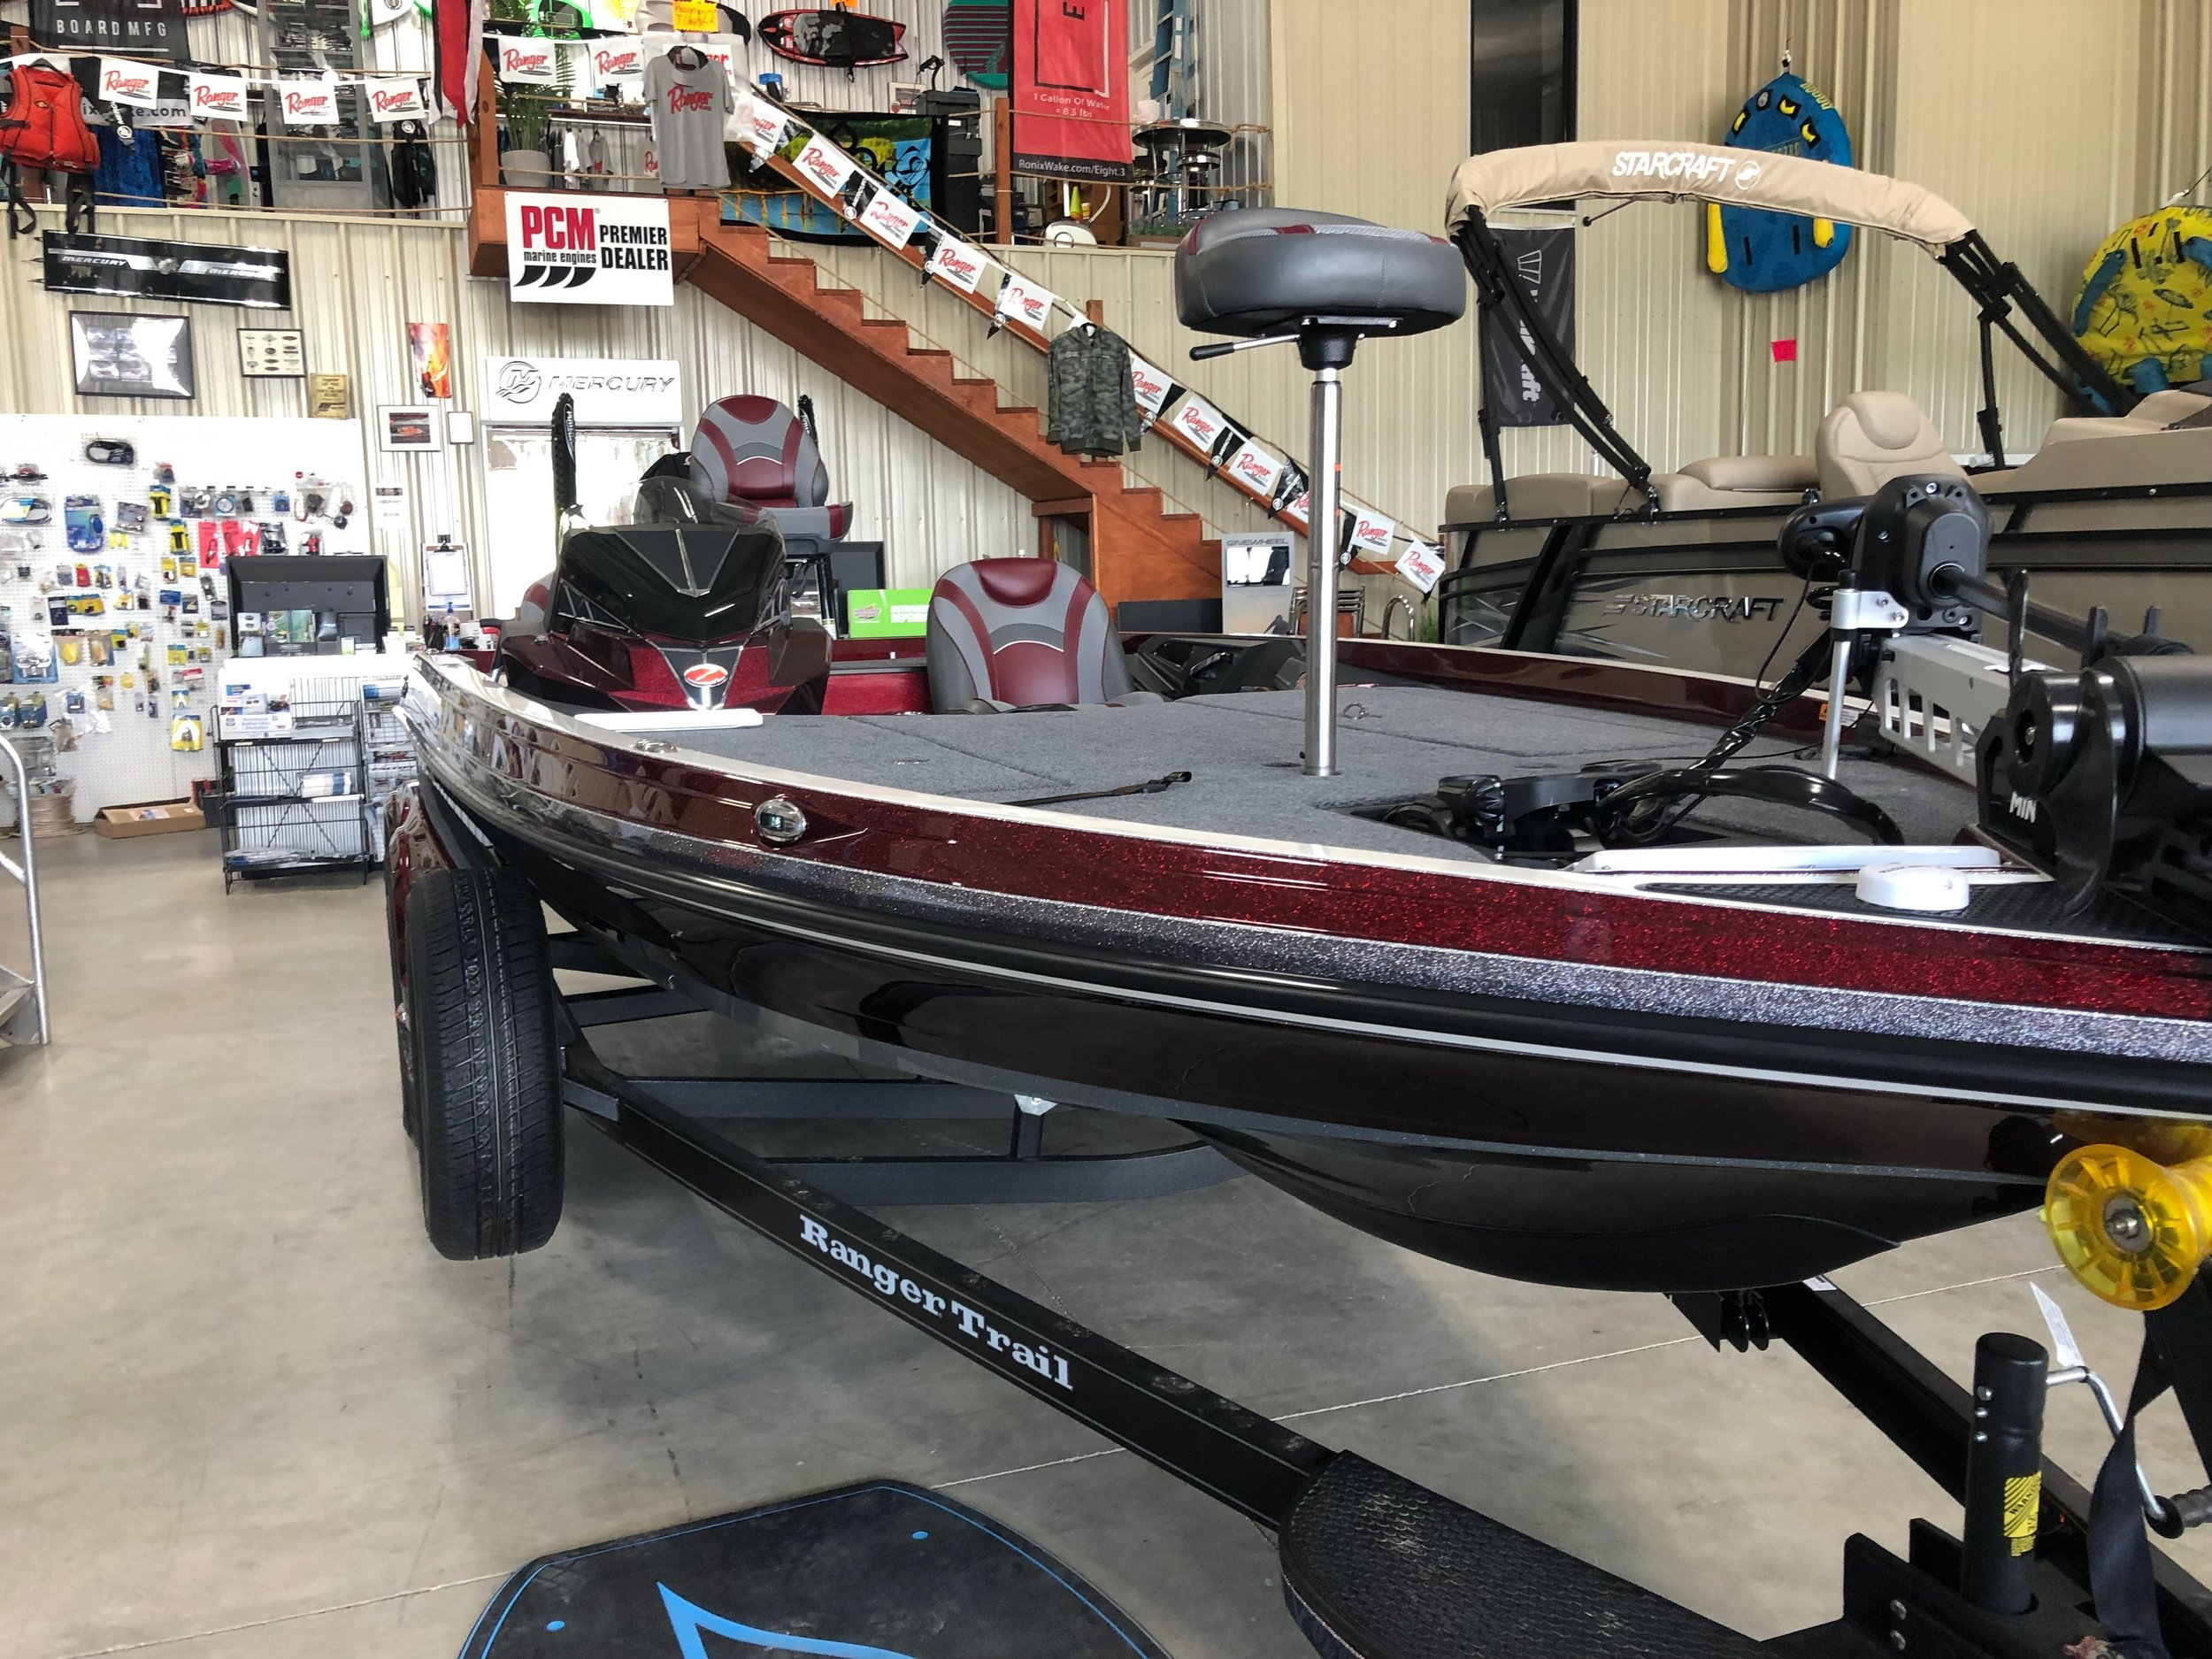 Ranger Z520L - This 2020 Burgandy Ranger Sport addition includes, 250 Mercury pro, extra seats, trailer with extra tire, cover, Lowrance depth finder on bow of boat and a Lowrance depth finder, phone plugs, and easy control labeling. Call for Price!!! Click here for more pictures.